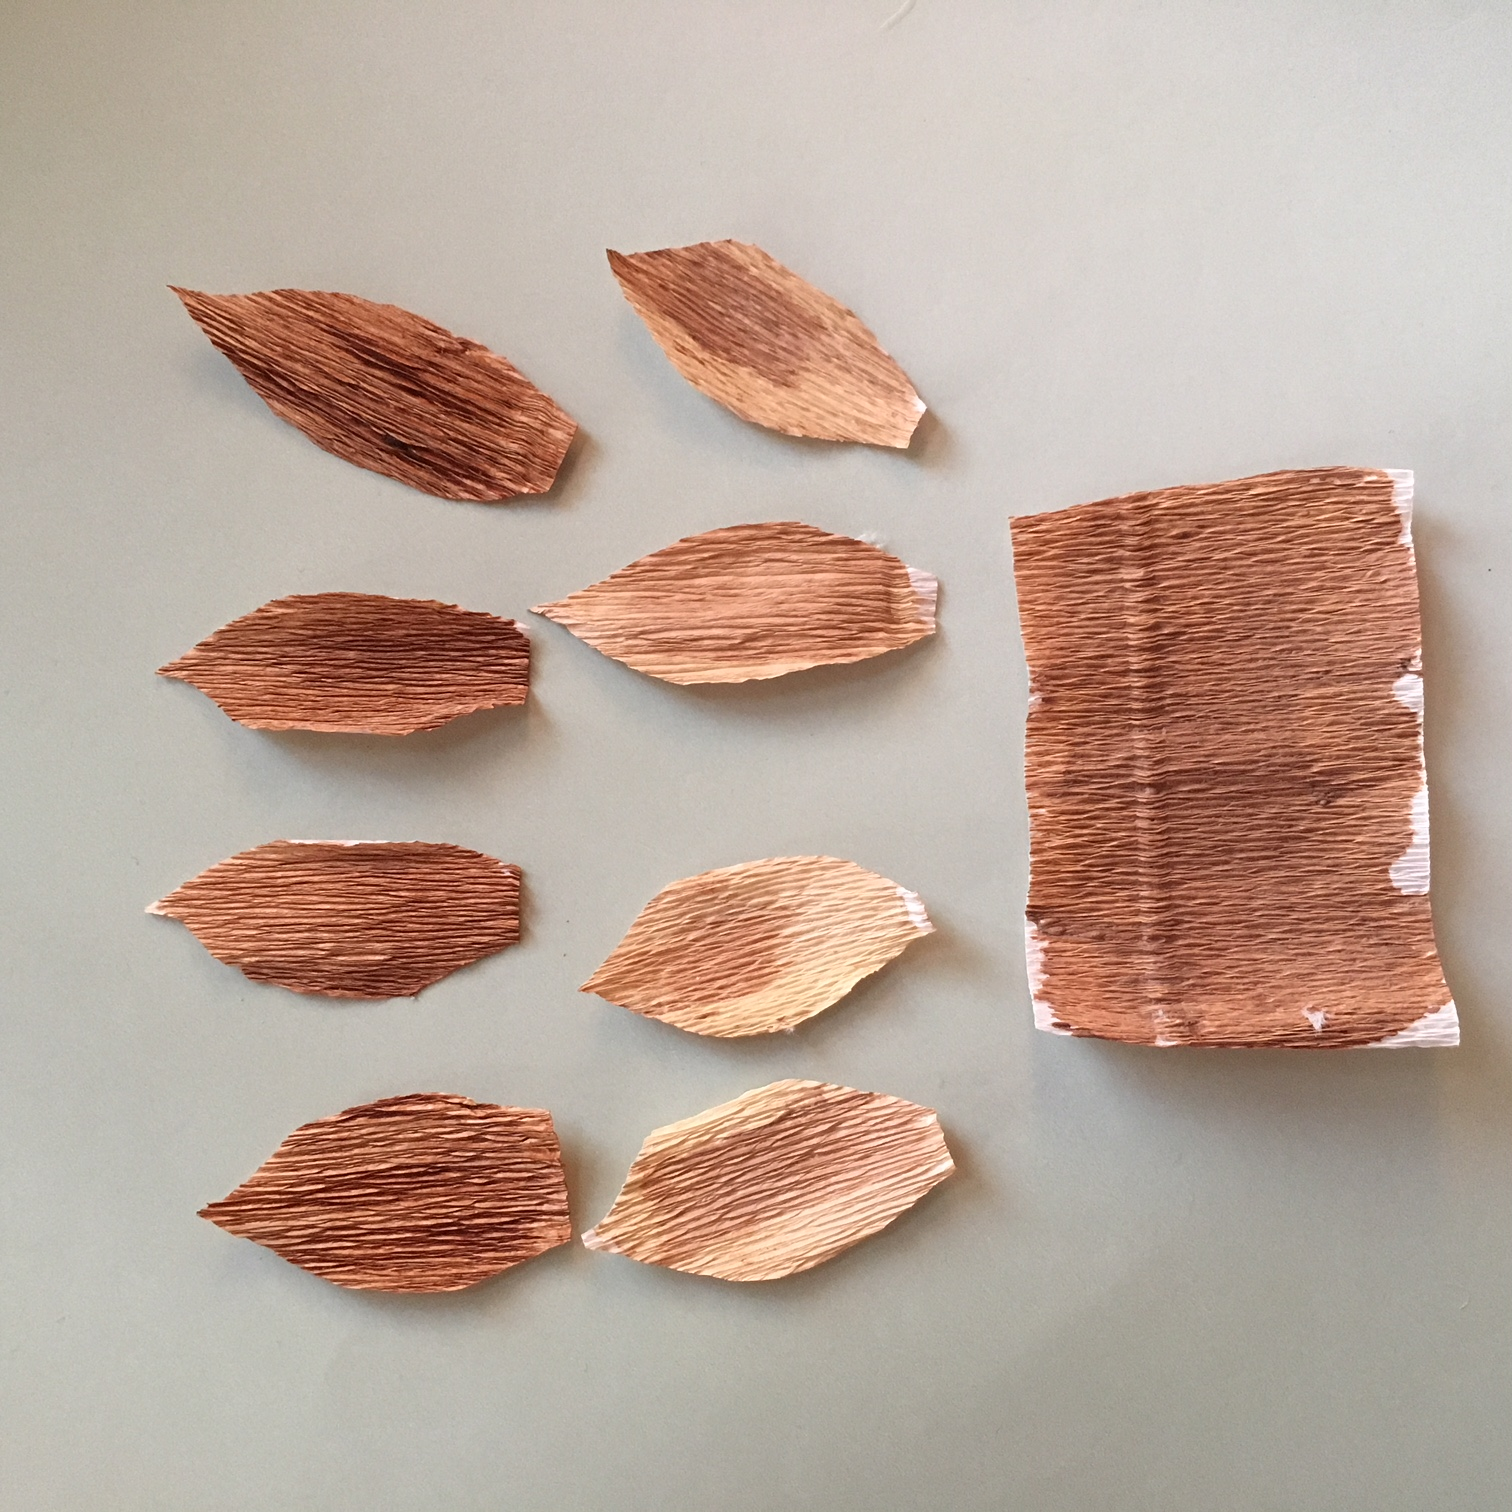 crepe paper, coloured in brown with acrylic paint